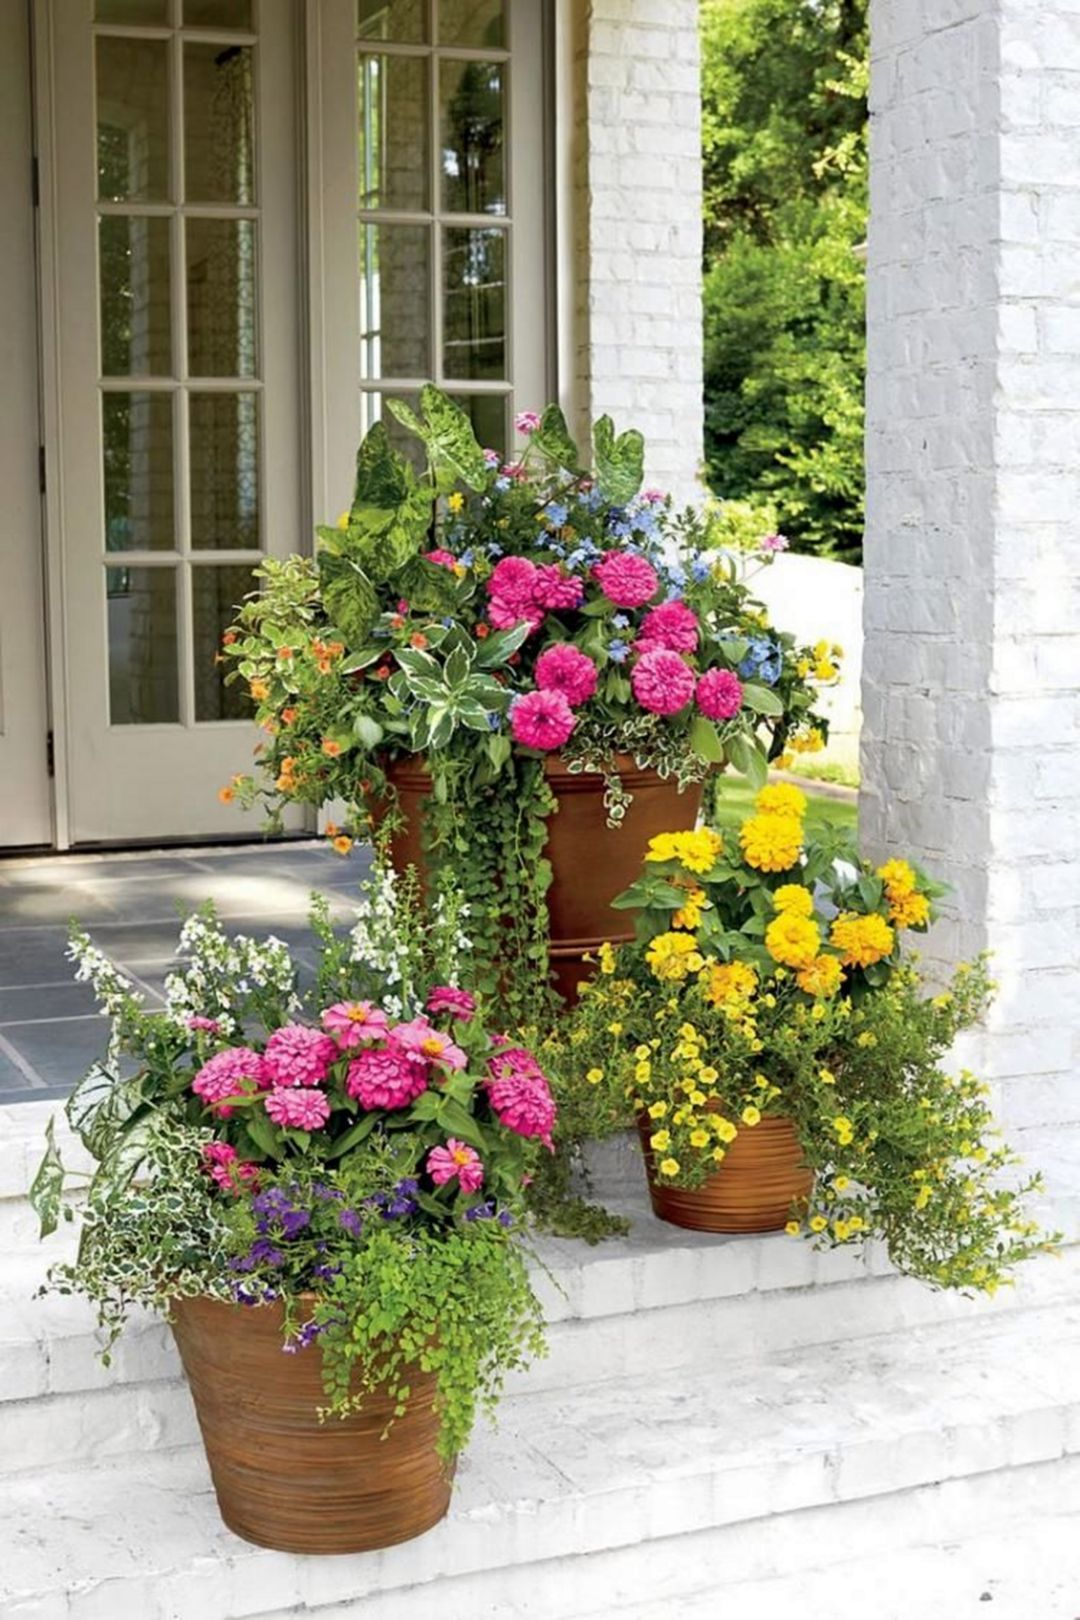 Creating And Planting A Container Garden 50 Awesome Ideas In 2020 Container Gardening Flowers Container Plants Flower Pots